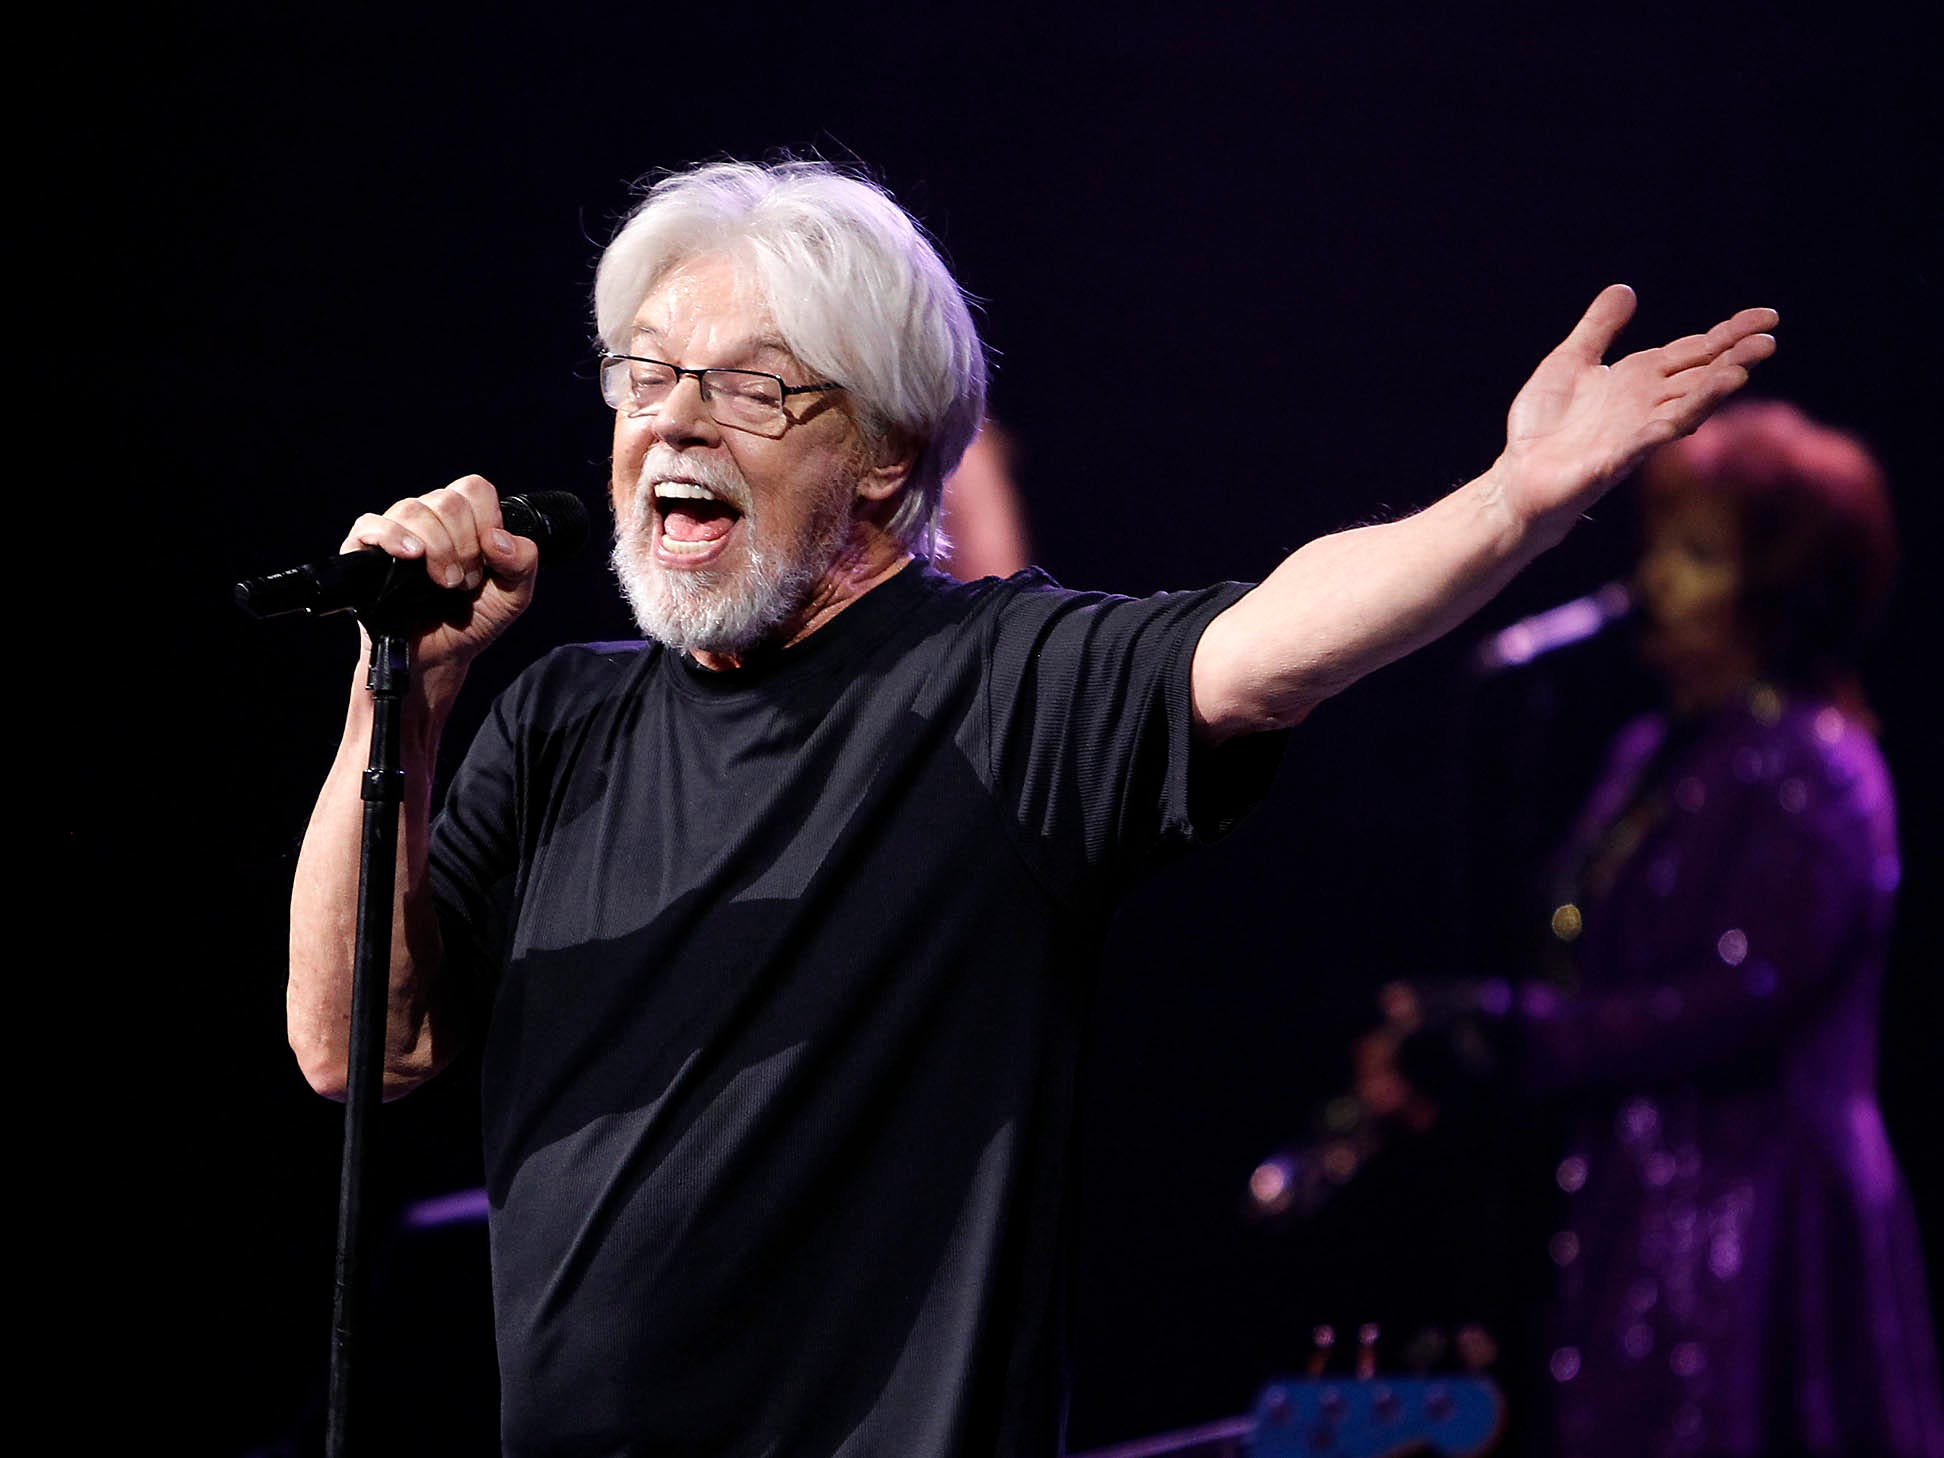 Bob Seger & The Silver Bullet Band perform during their Roll Me Away - Final Tour stop at Talking Stick Resort Arena in Phoenix on Friday, Feb. 15, 2019. (Photo by Ralph Freso for azcentral.com)